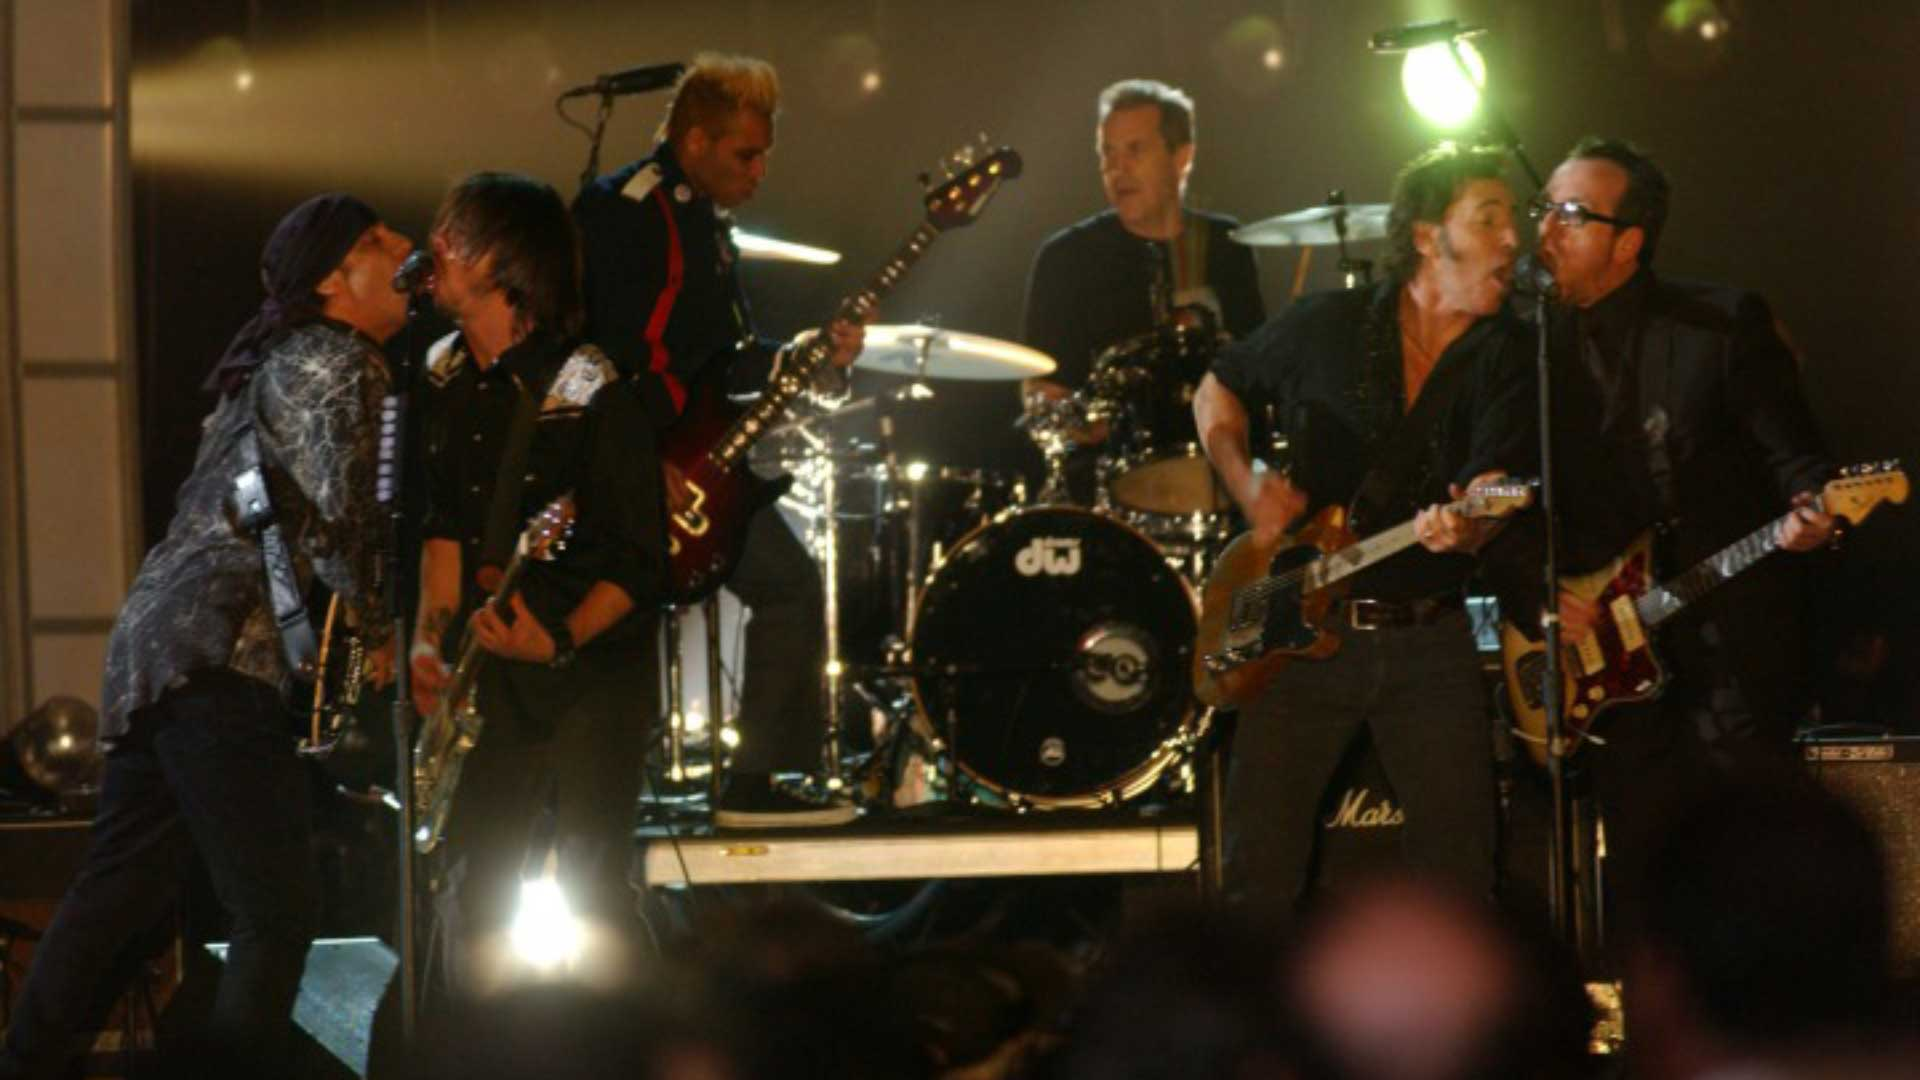 Bruce Springsteen, Elvis Costello, Dave Grohl, Steven Van Zandt, and Tony Kanal perform